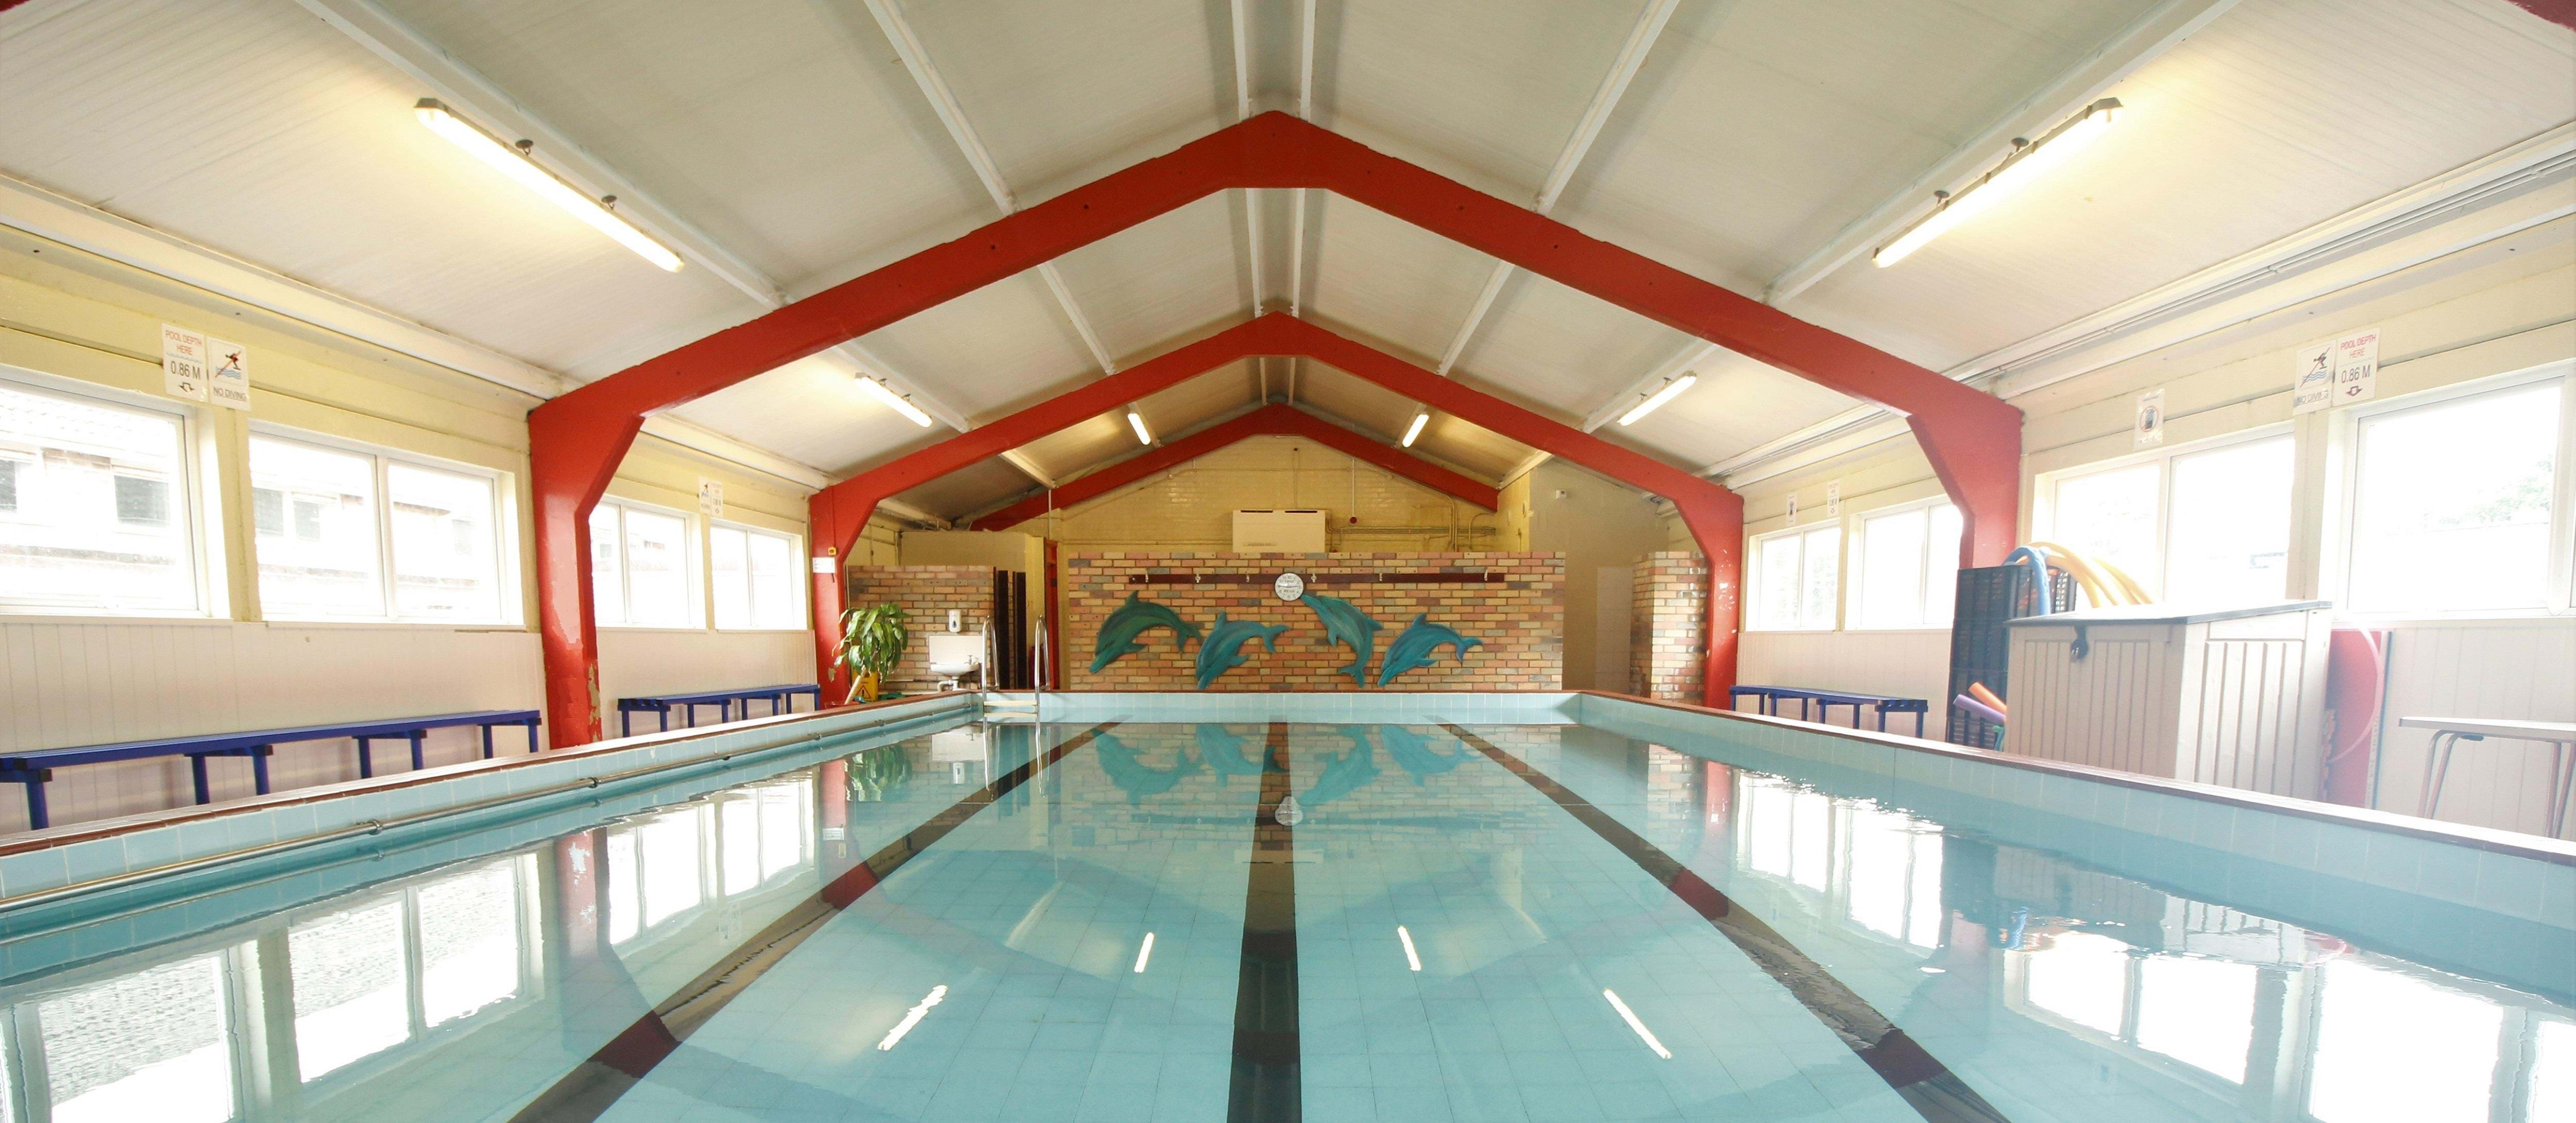 New weekend swimming classes in Crowborough